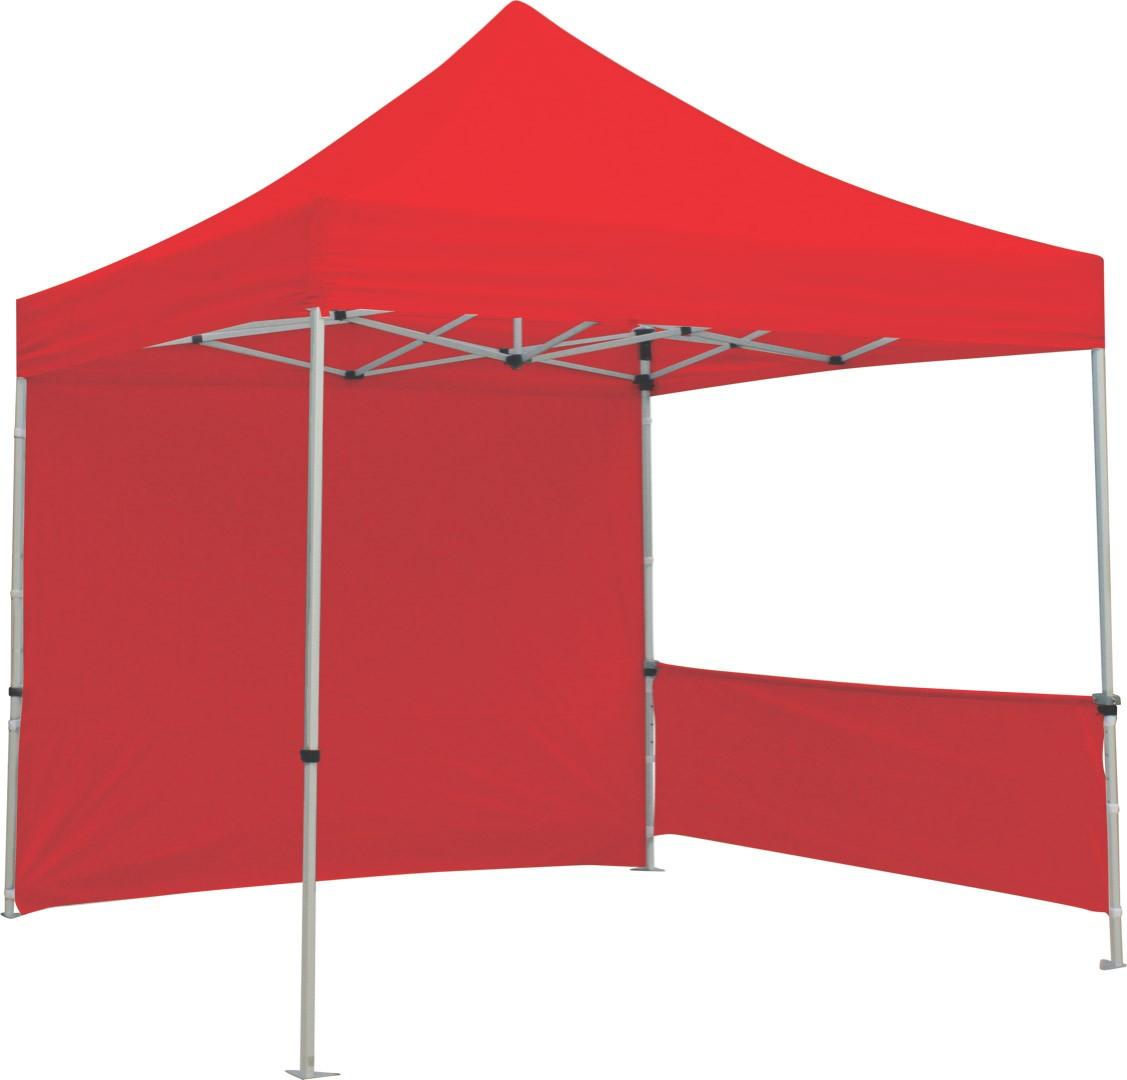 Canopy Tent Solid Color Half Wall